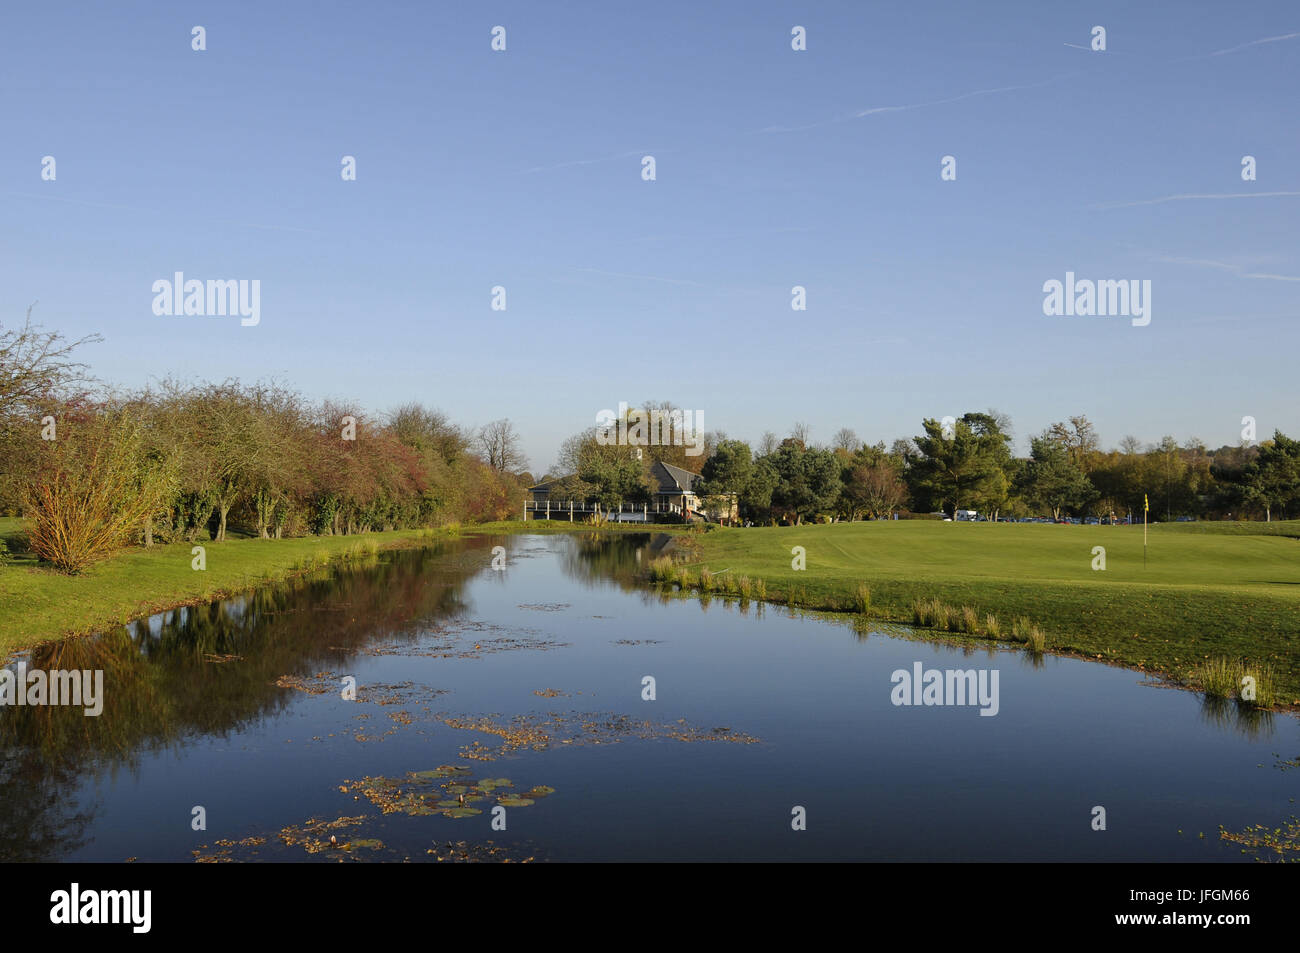 View over the pond with 9th Green to right and The Clubhouse in background Broke Hill Golf Club Orpington Kent England - Stock Image